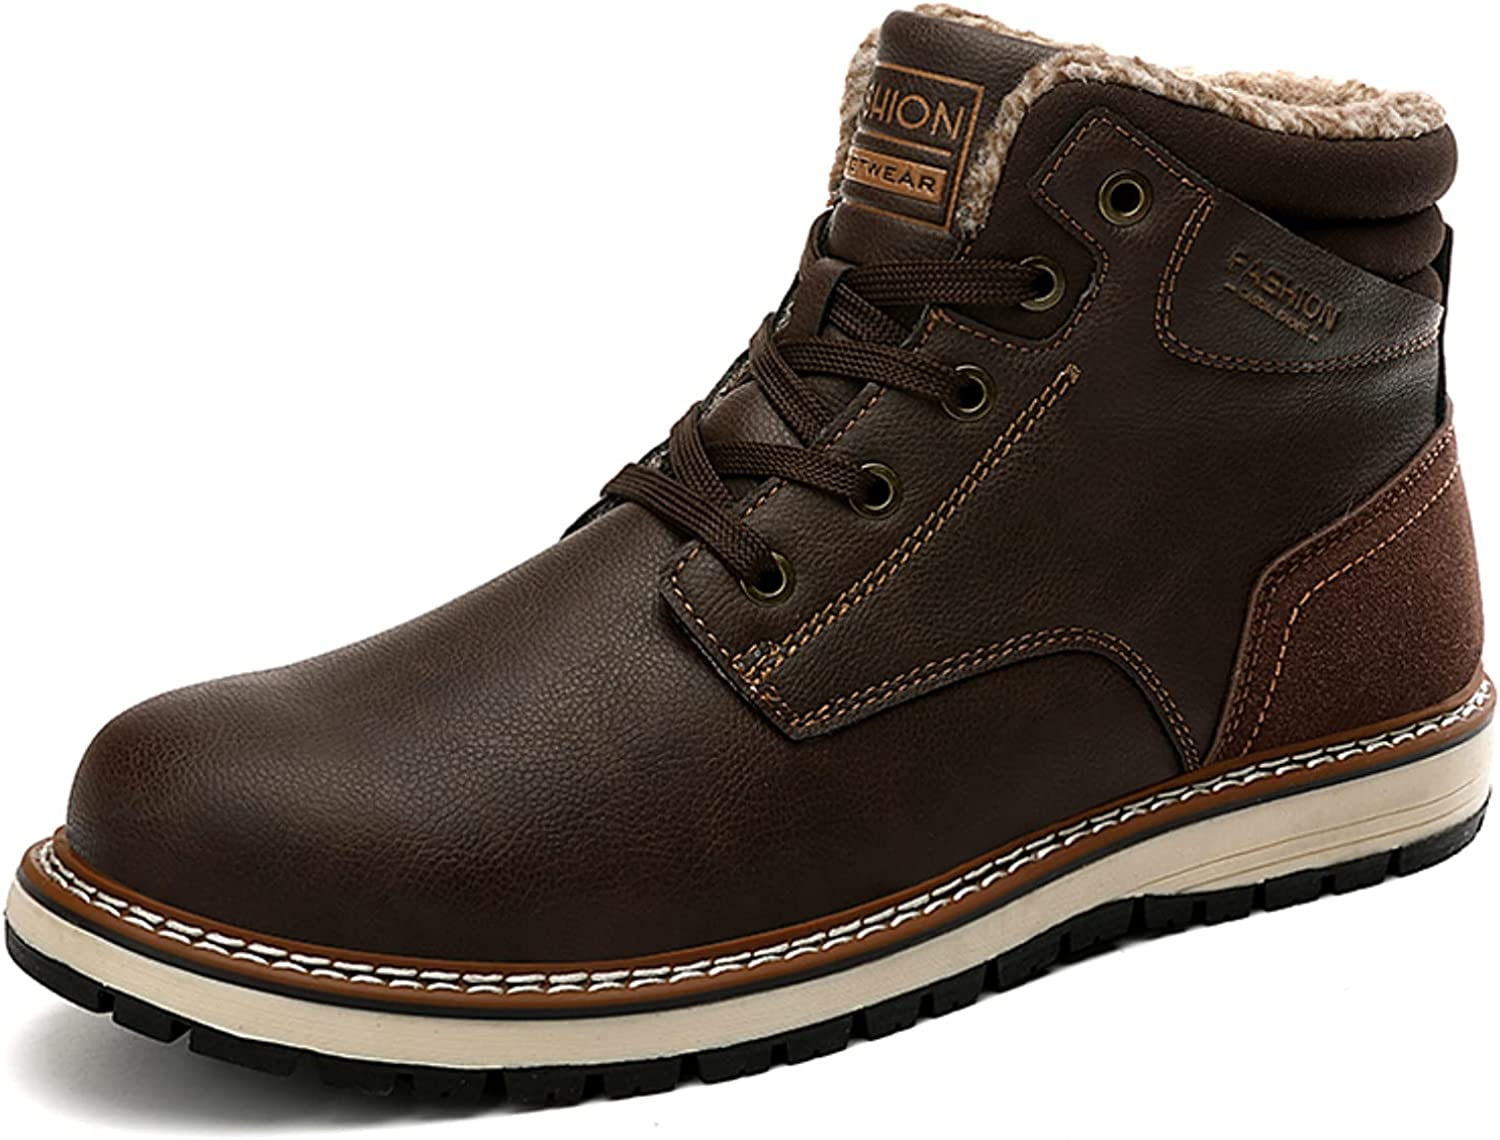 COSIDRAM Men's Shoes Casual Chukka for Fashion Max Max 70% OFF 61% OFF Warm Keep Classic